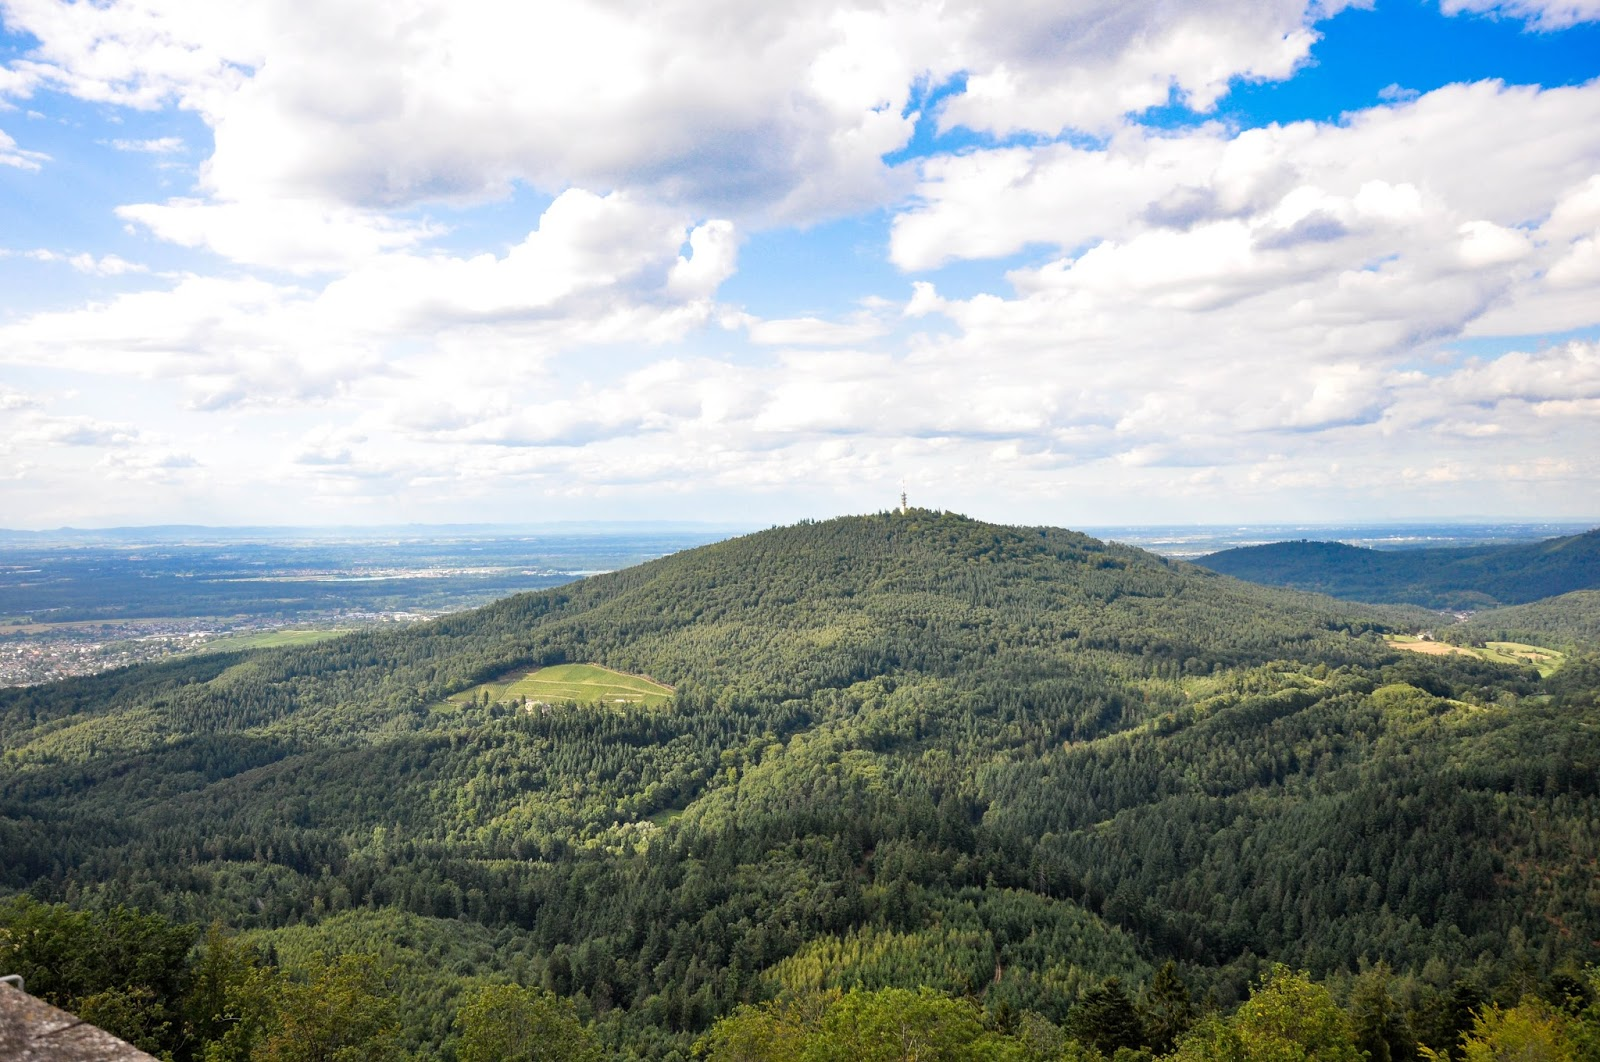 The Black Forest seen from the top of the Yburg Castle tower, Yburg, Germany